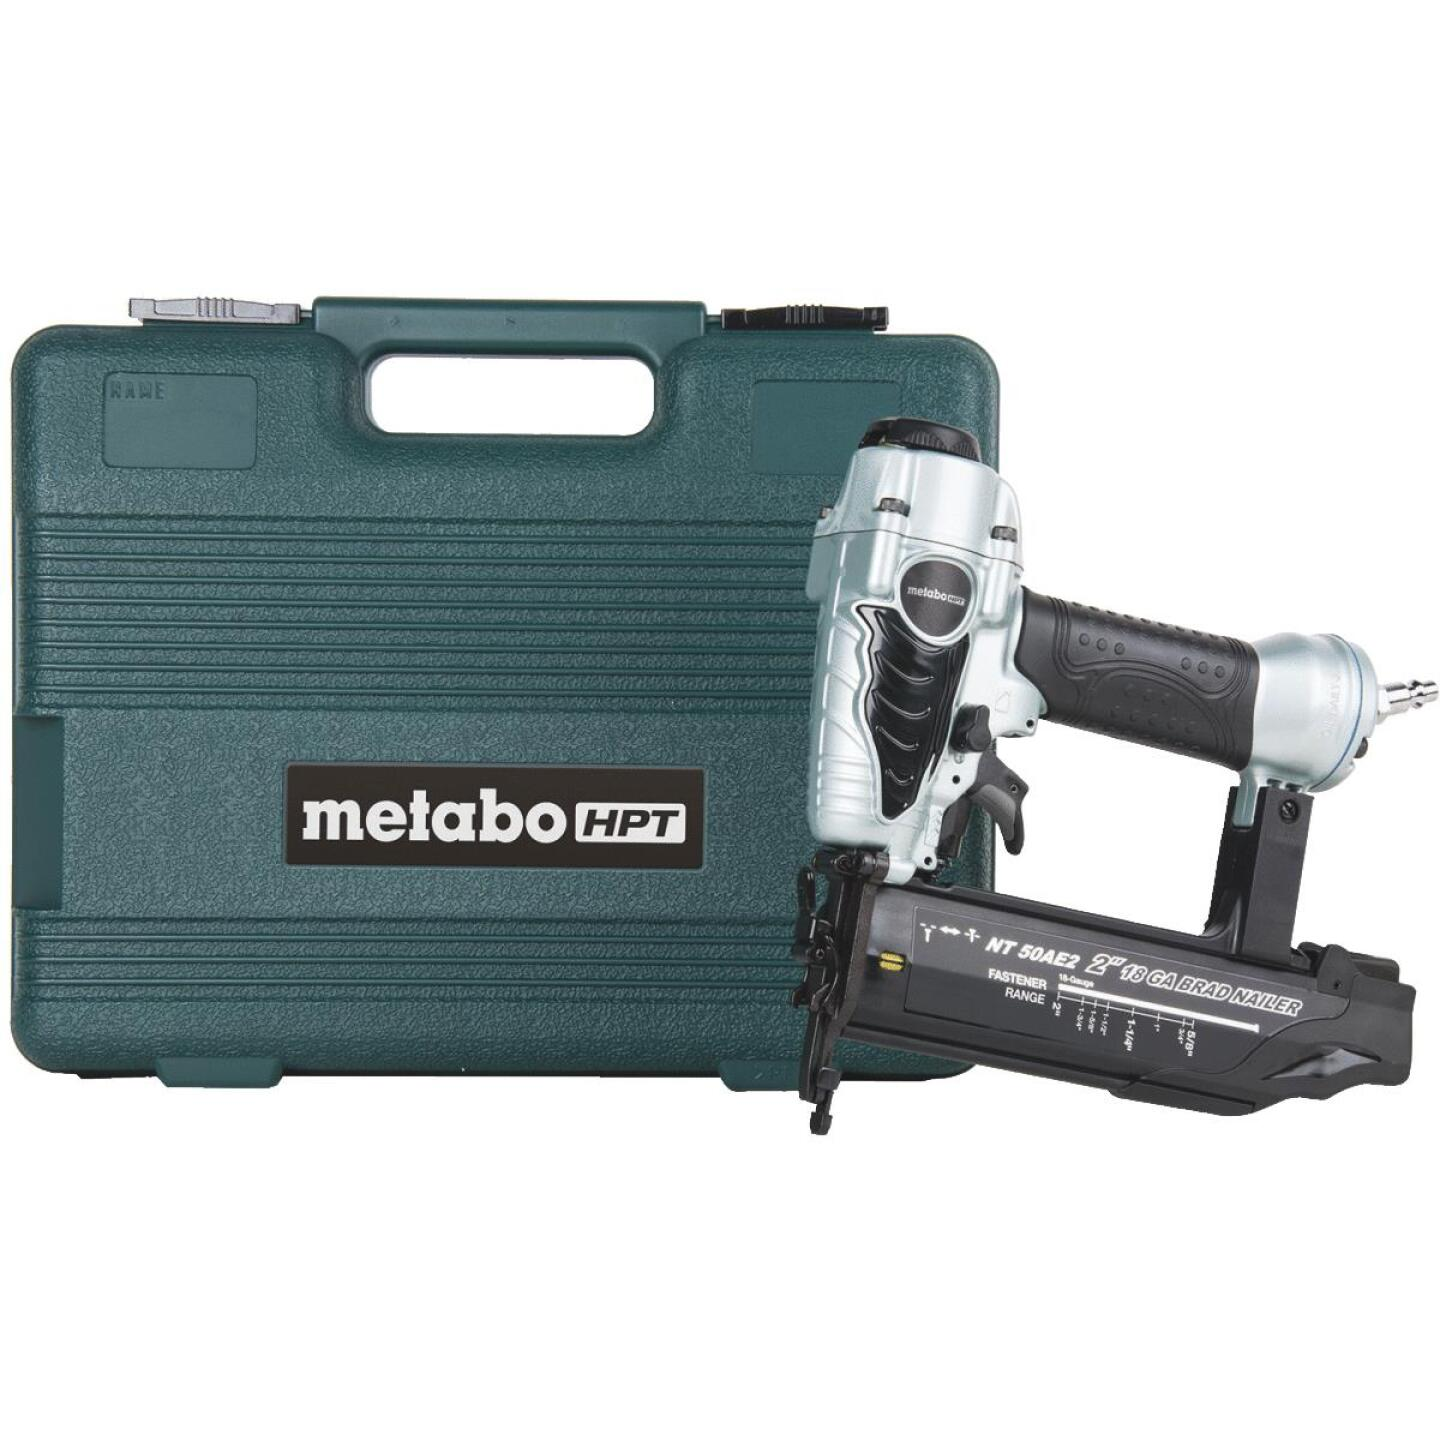 Metabo 18-Gauge 2 In. Brad Nailer Image 1